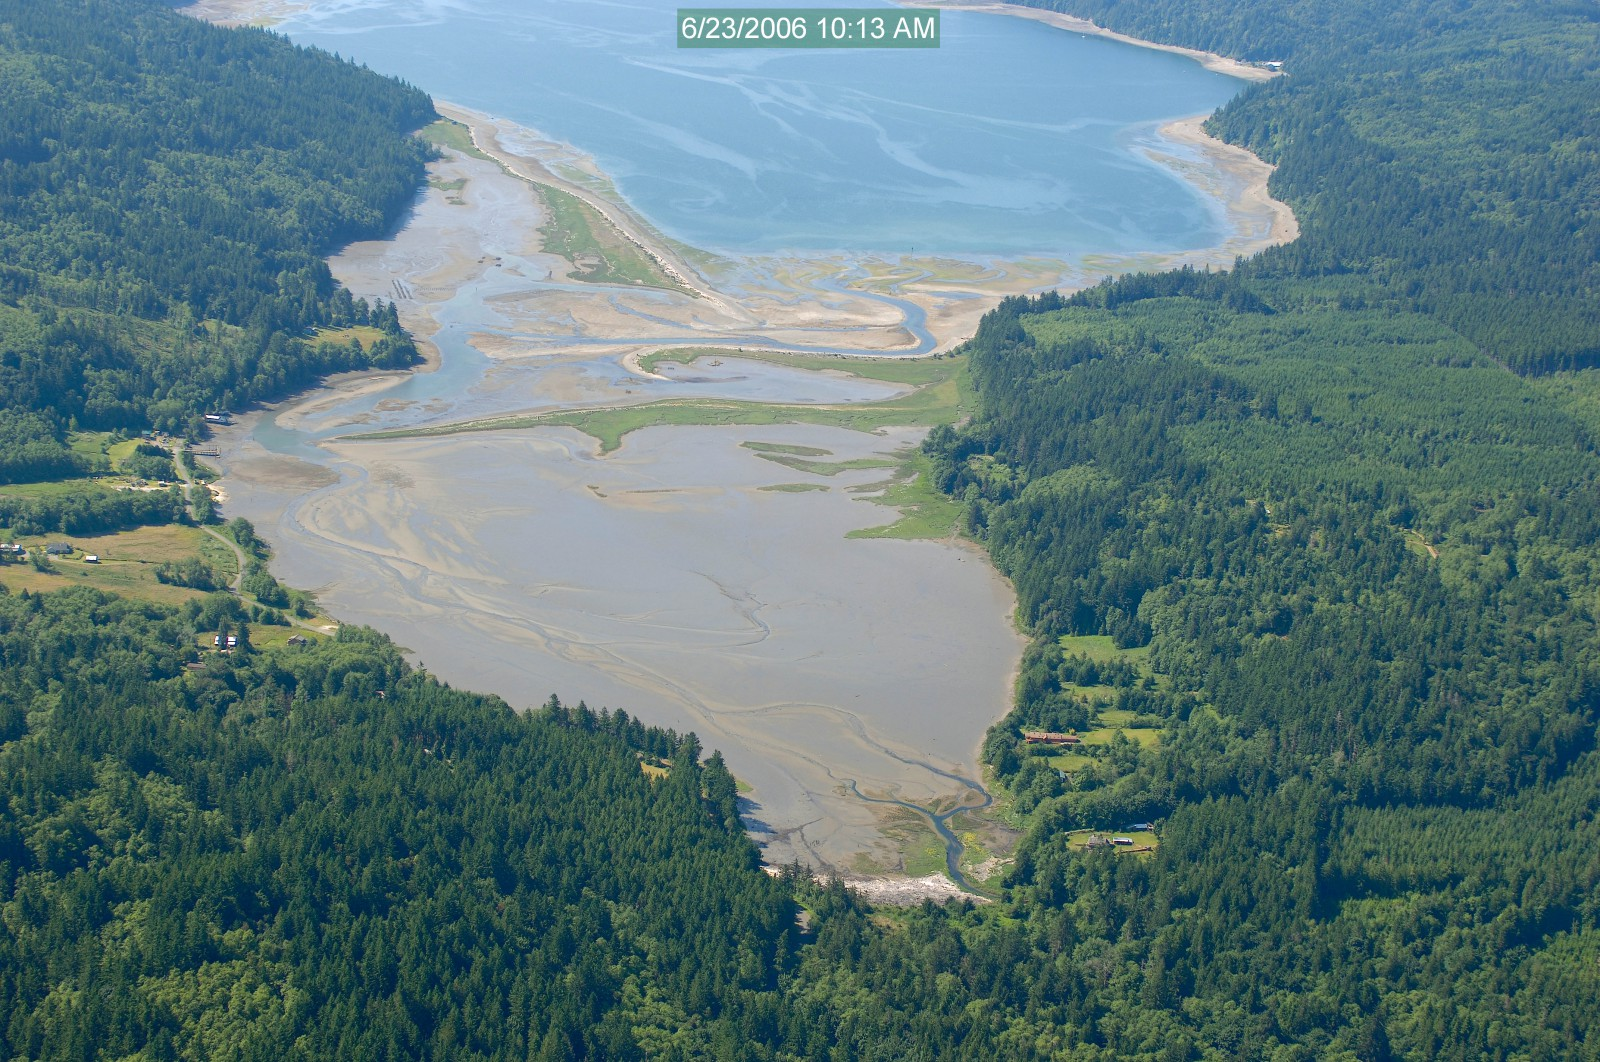 Restoration of salt marsh shoreline within the Dabob Bay Natural Area, Puget Sound, WA (2014)